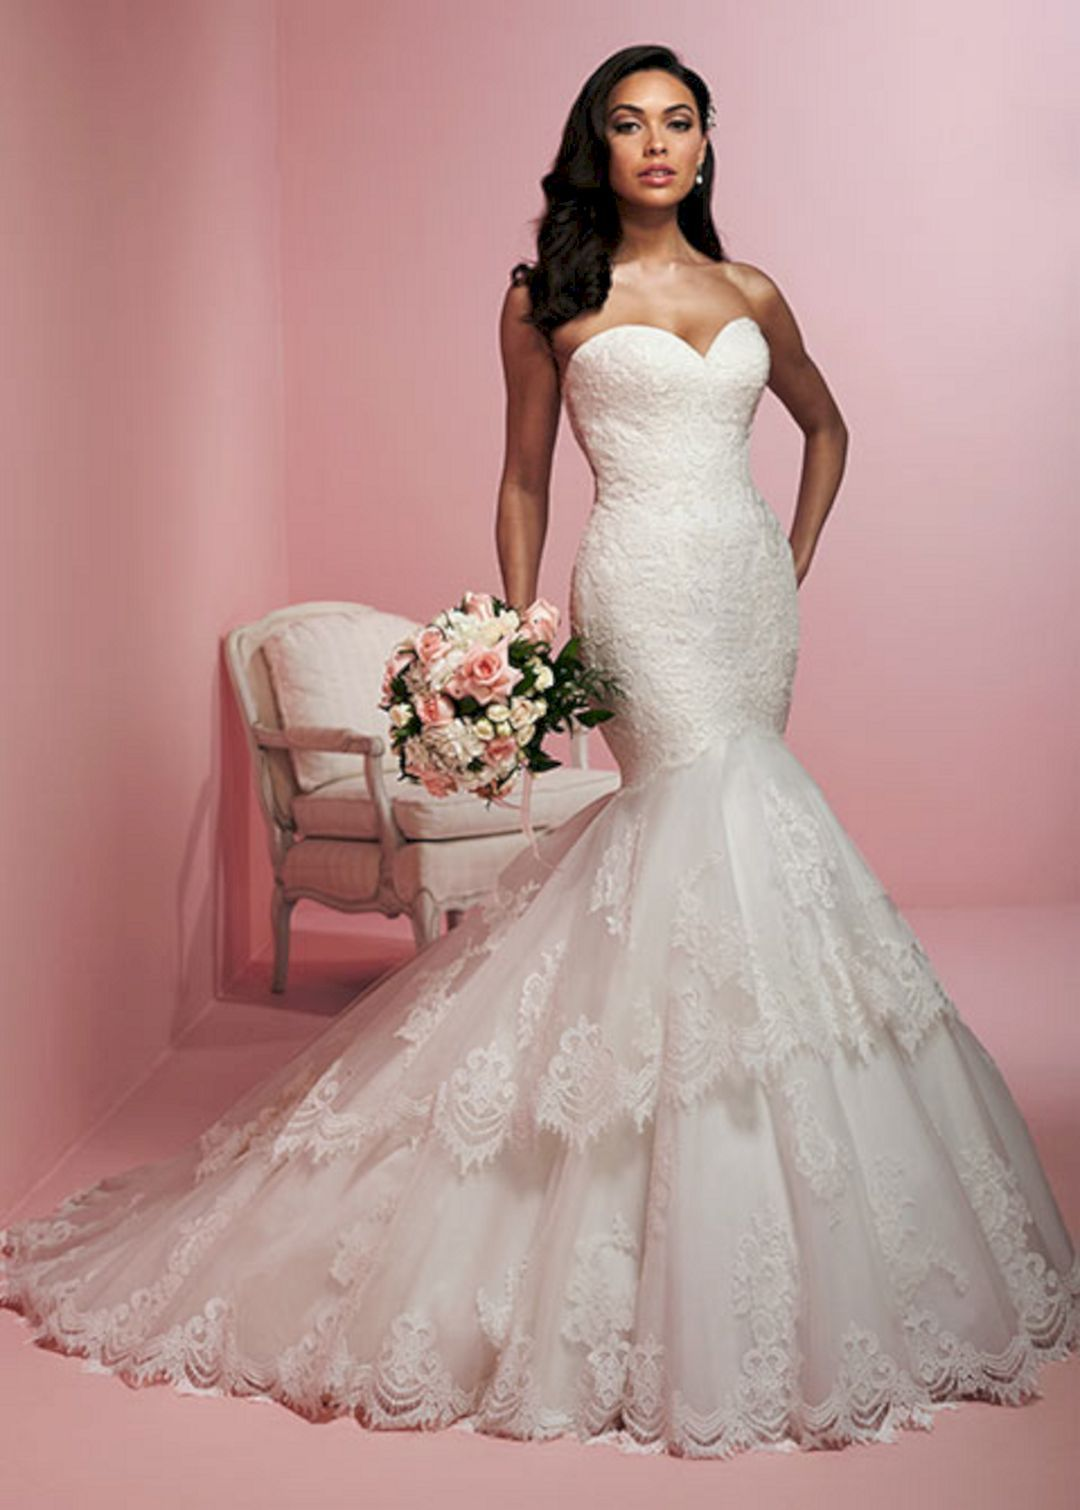 20+ Most Popular Wedding Dresses Ideas Of The Week